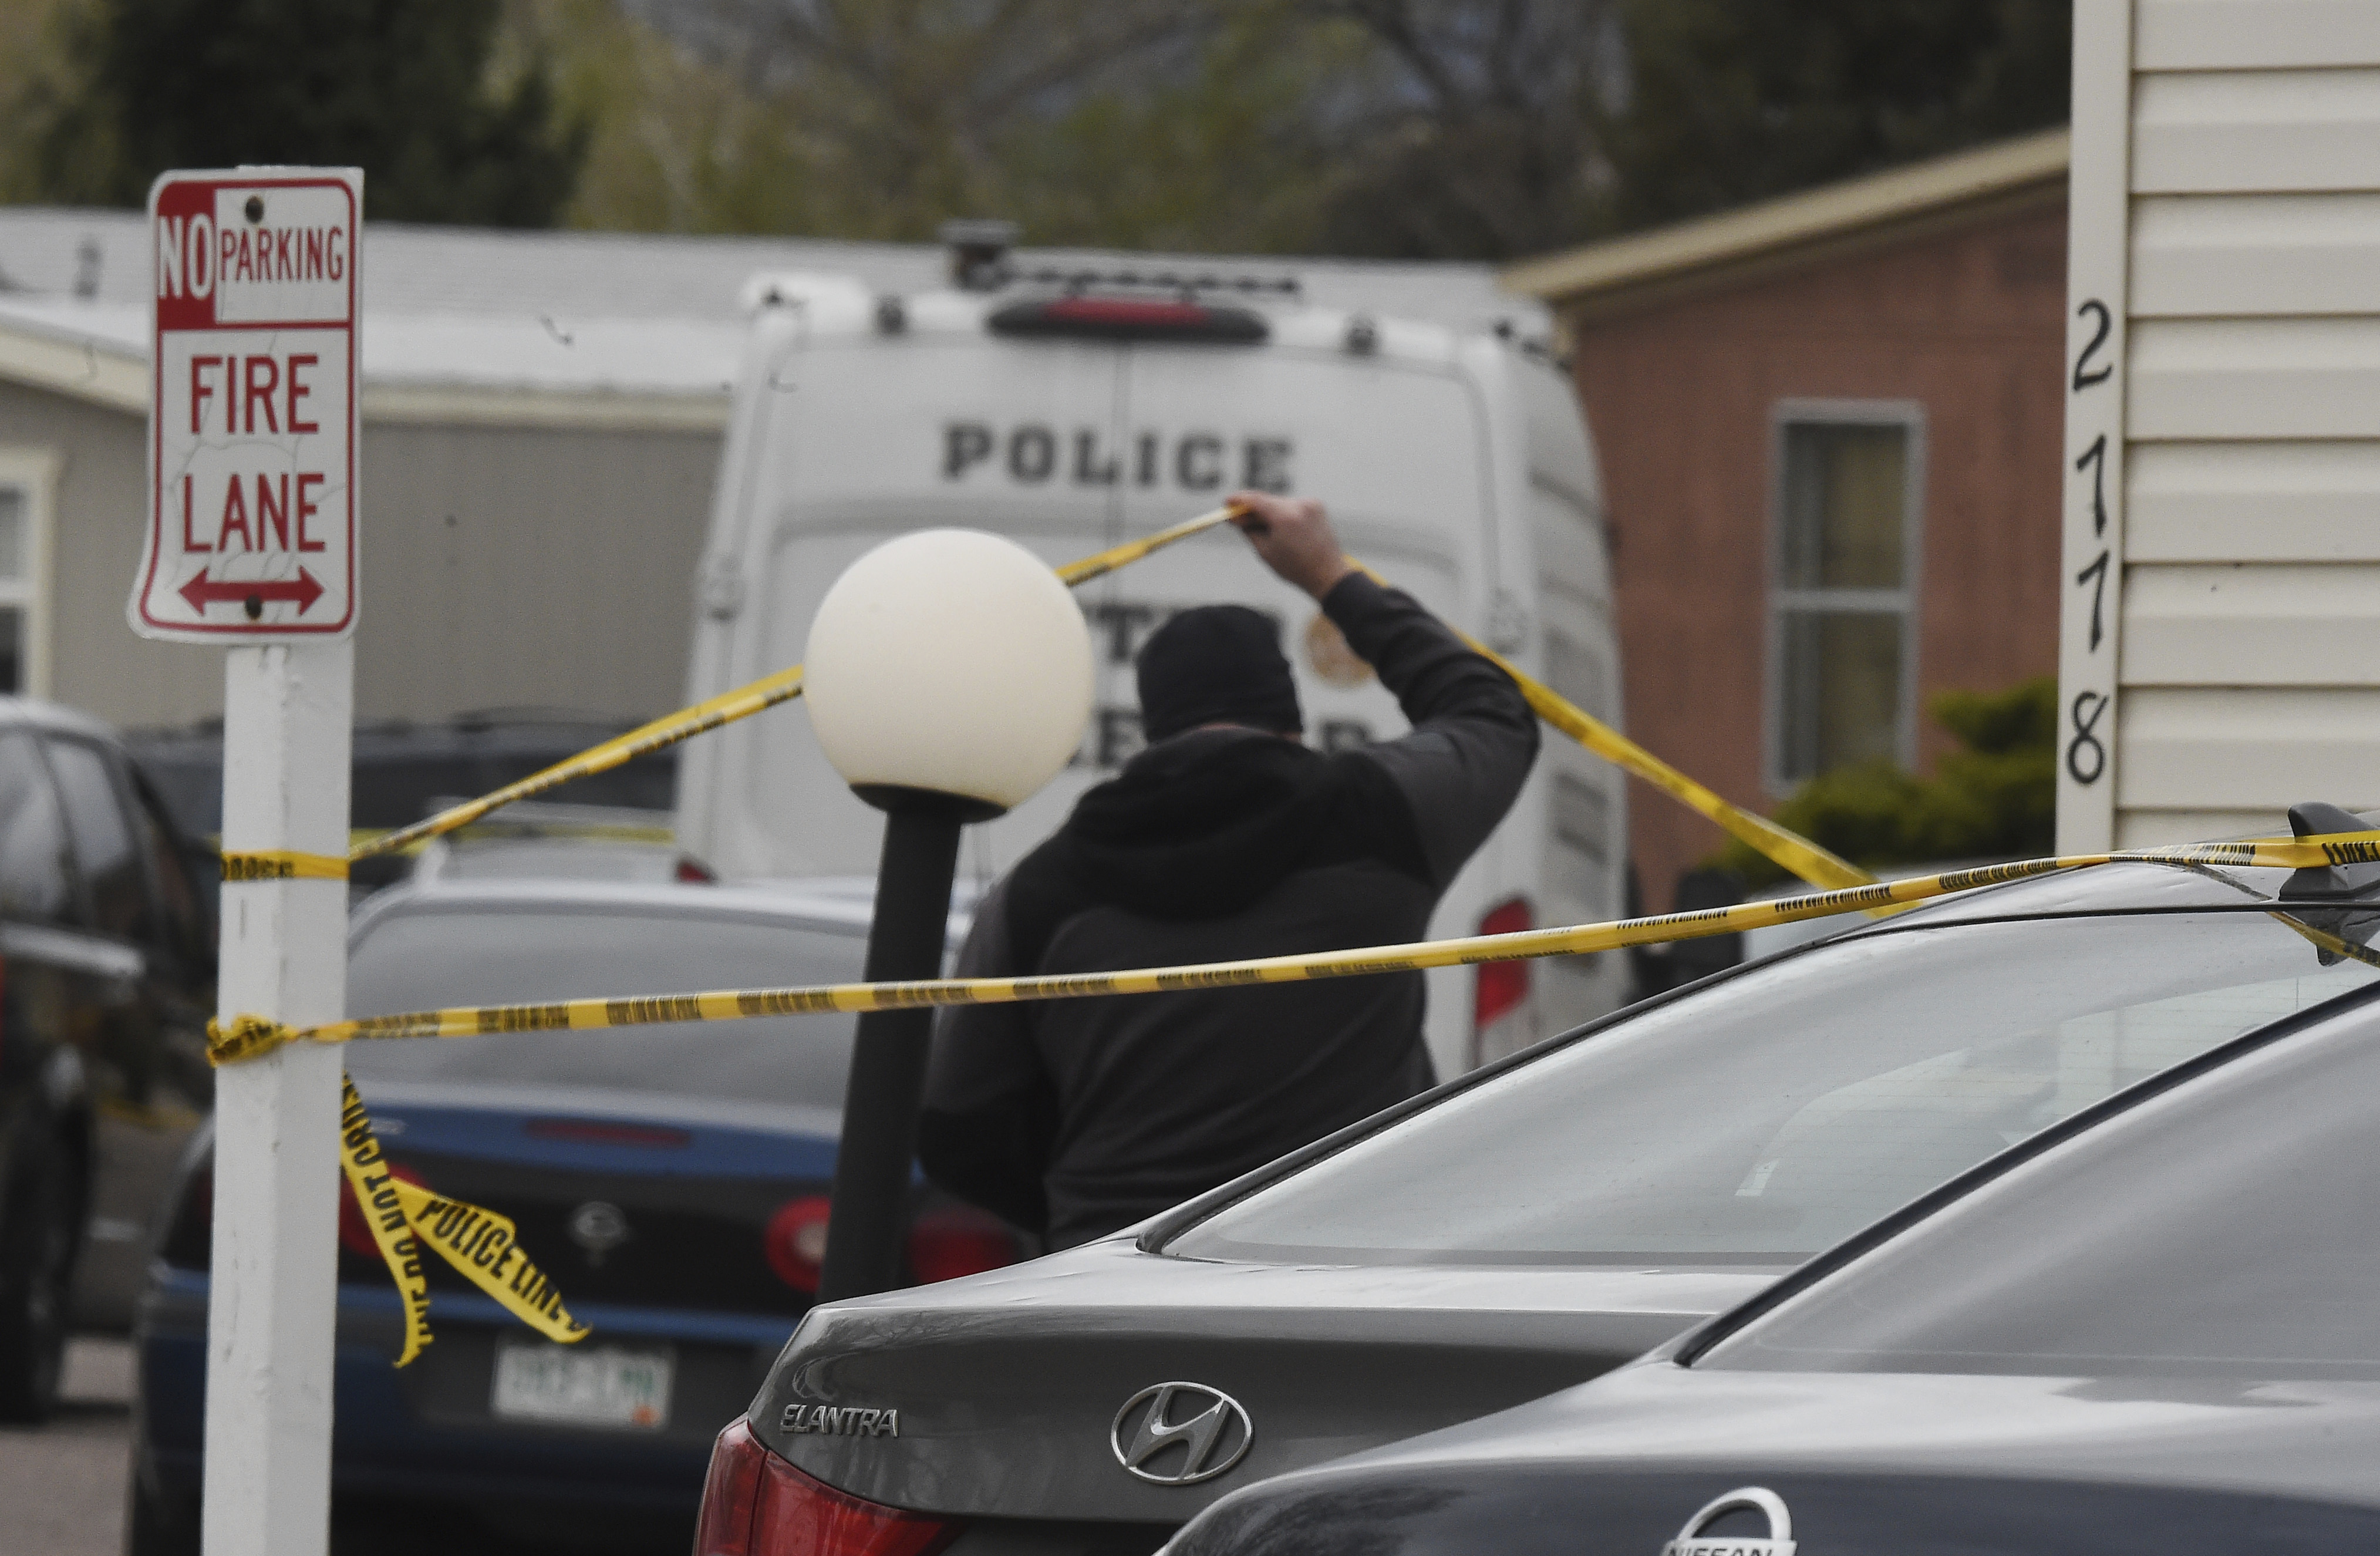 A Colorado Springs Police Department officer lifts up crime tape at the scene where multiple people were shot and killed early Sunday in Colorado Springs, Colo.